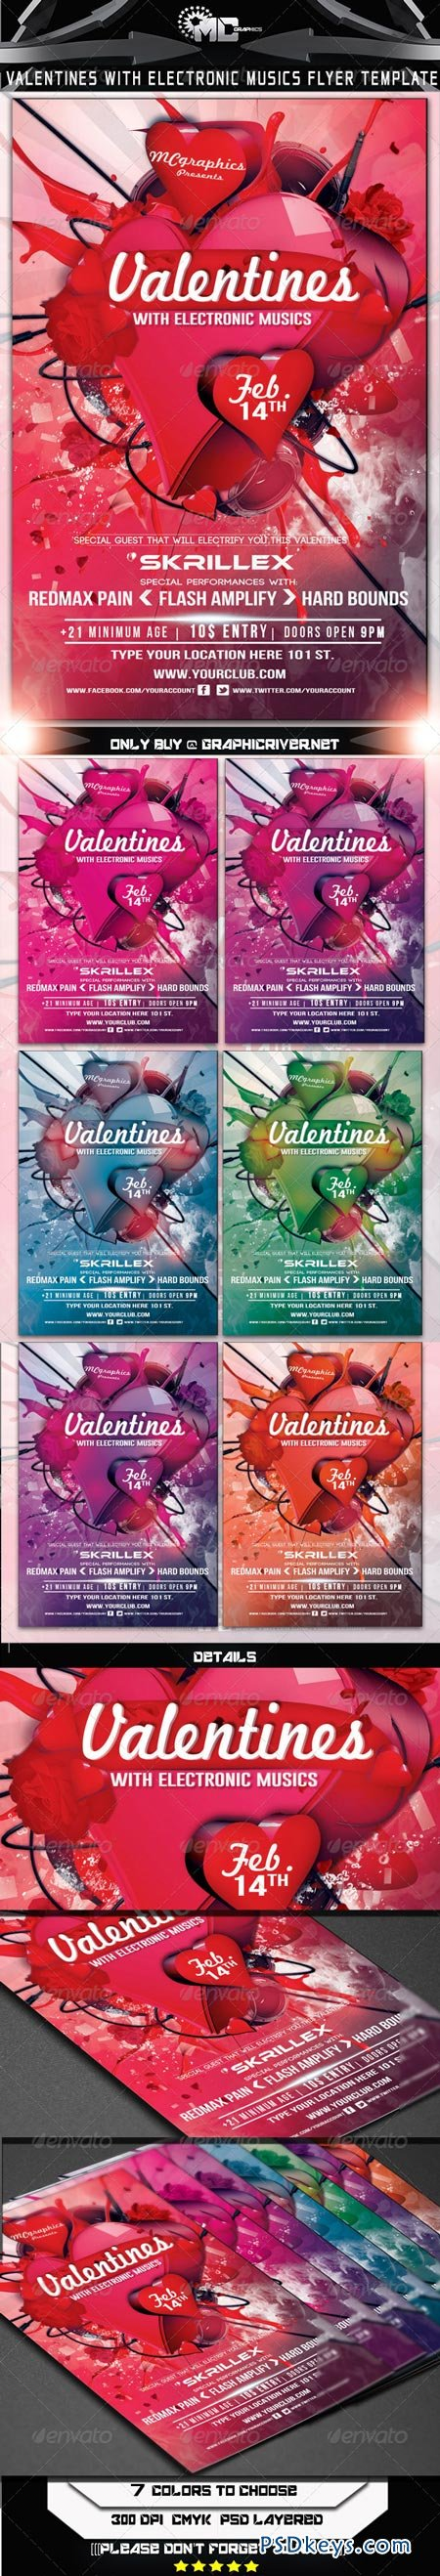 Valentines With Electronic Musics Flyer Template 6548642